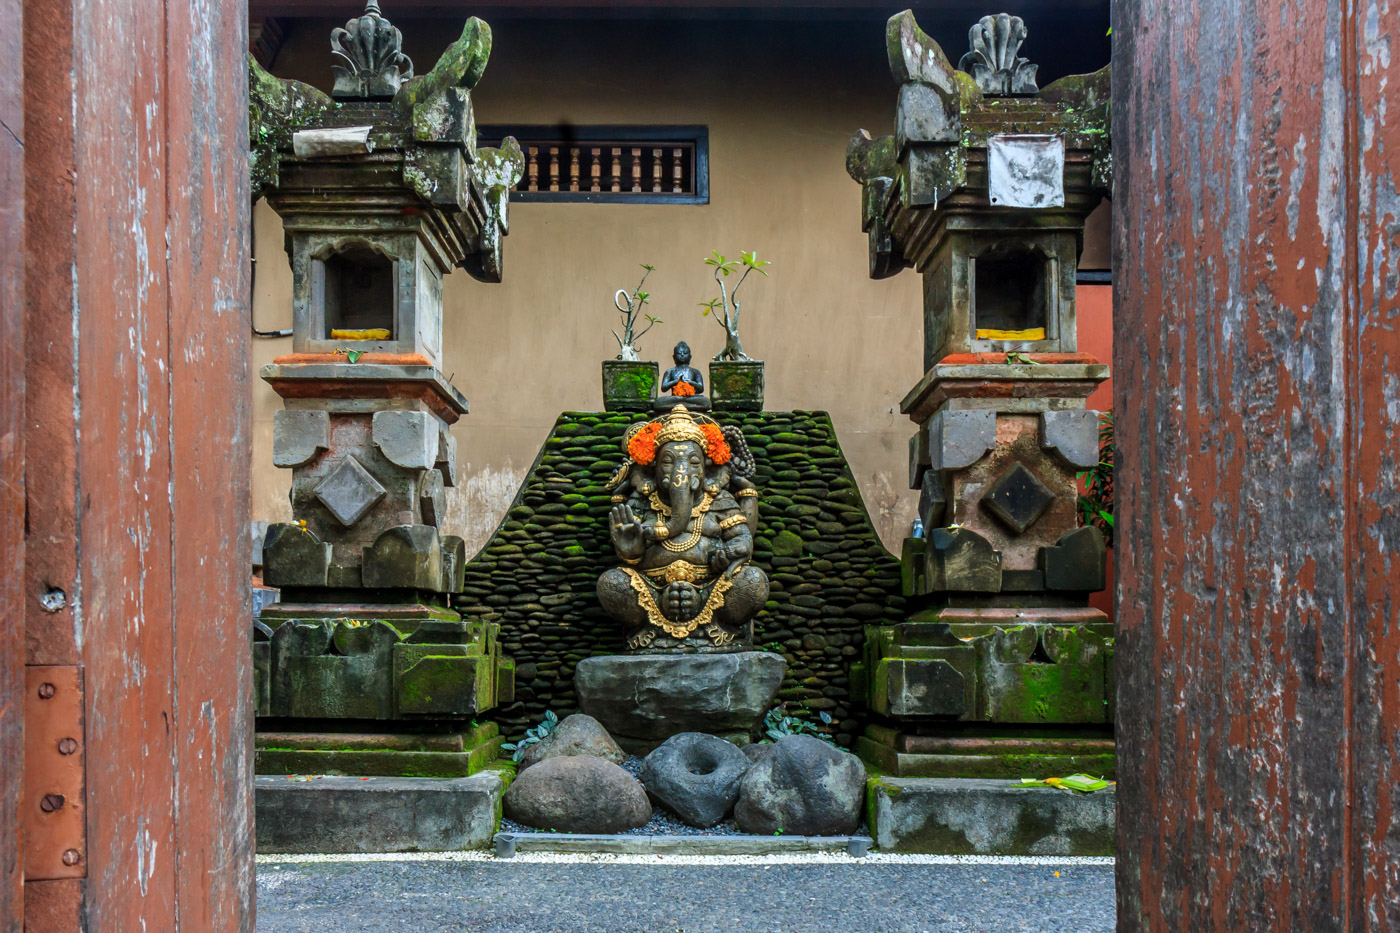 Just a typical house in Ubud, Bali